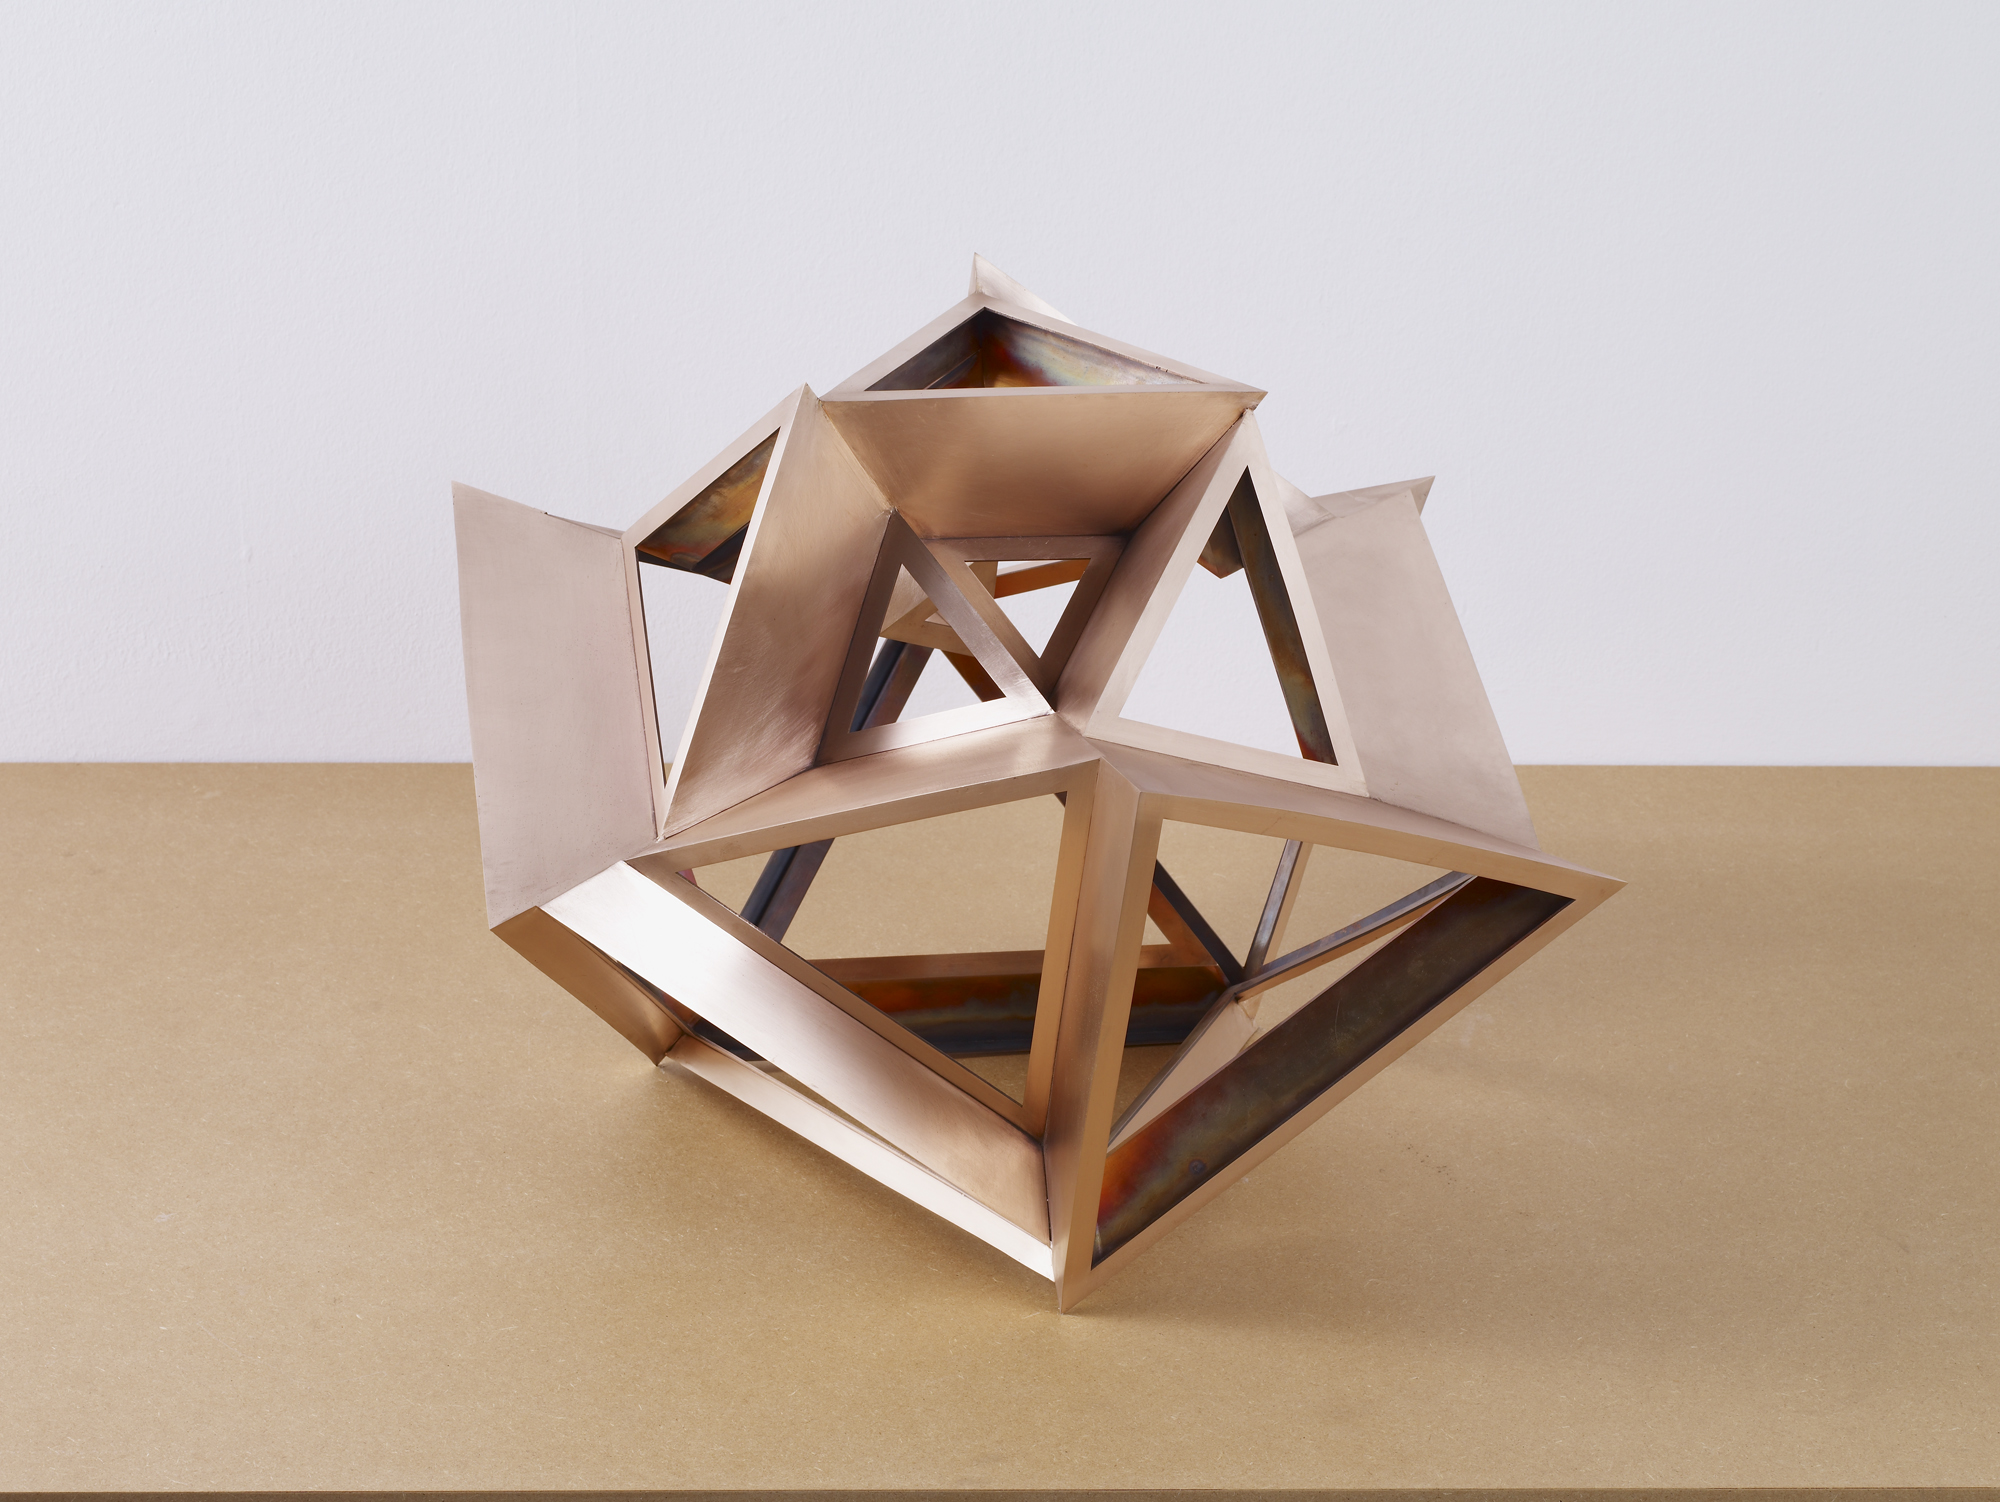 CS240_Perimeter Studies (Icosahedron) no.2 of Set 1_2011